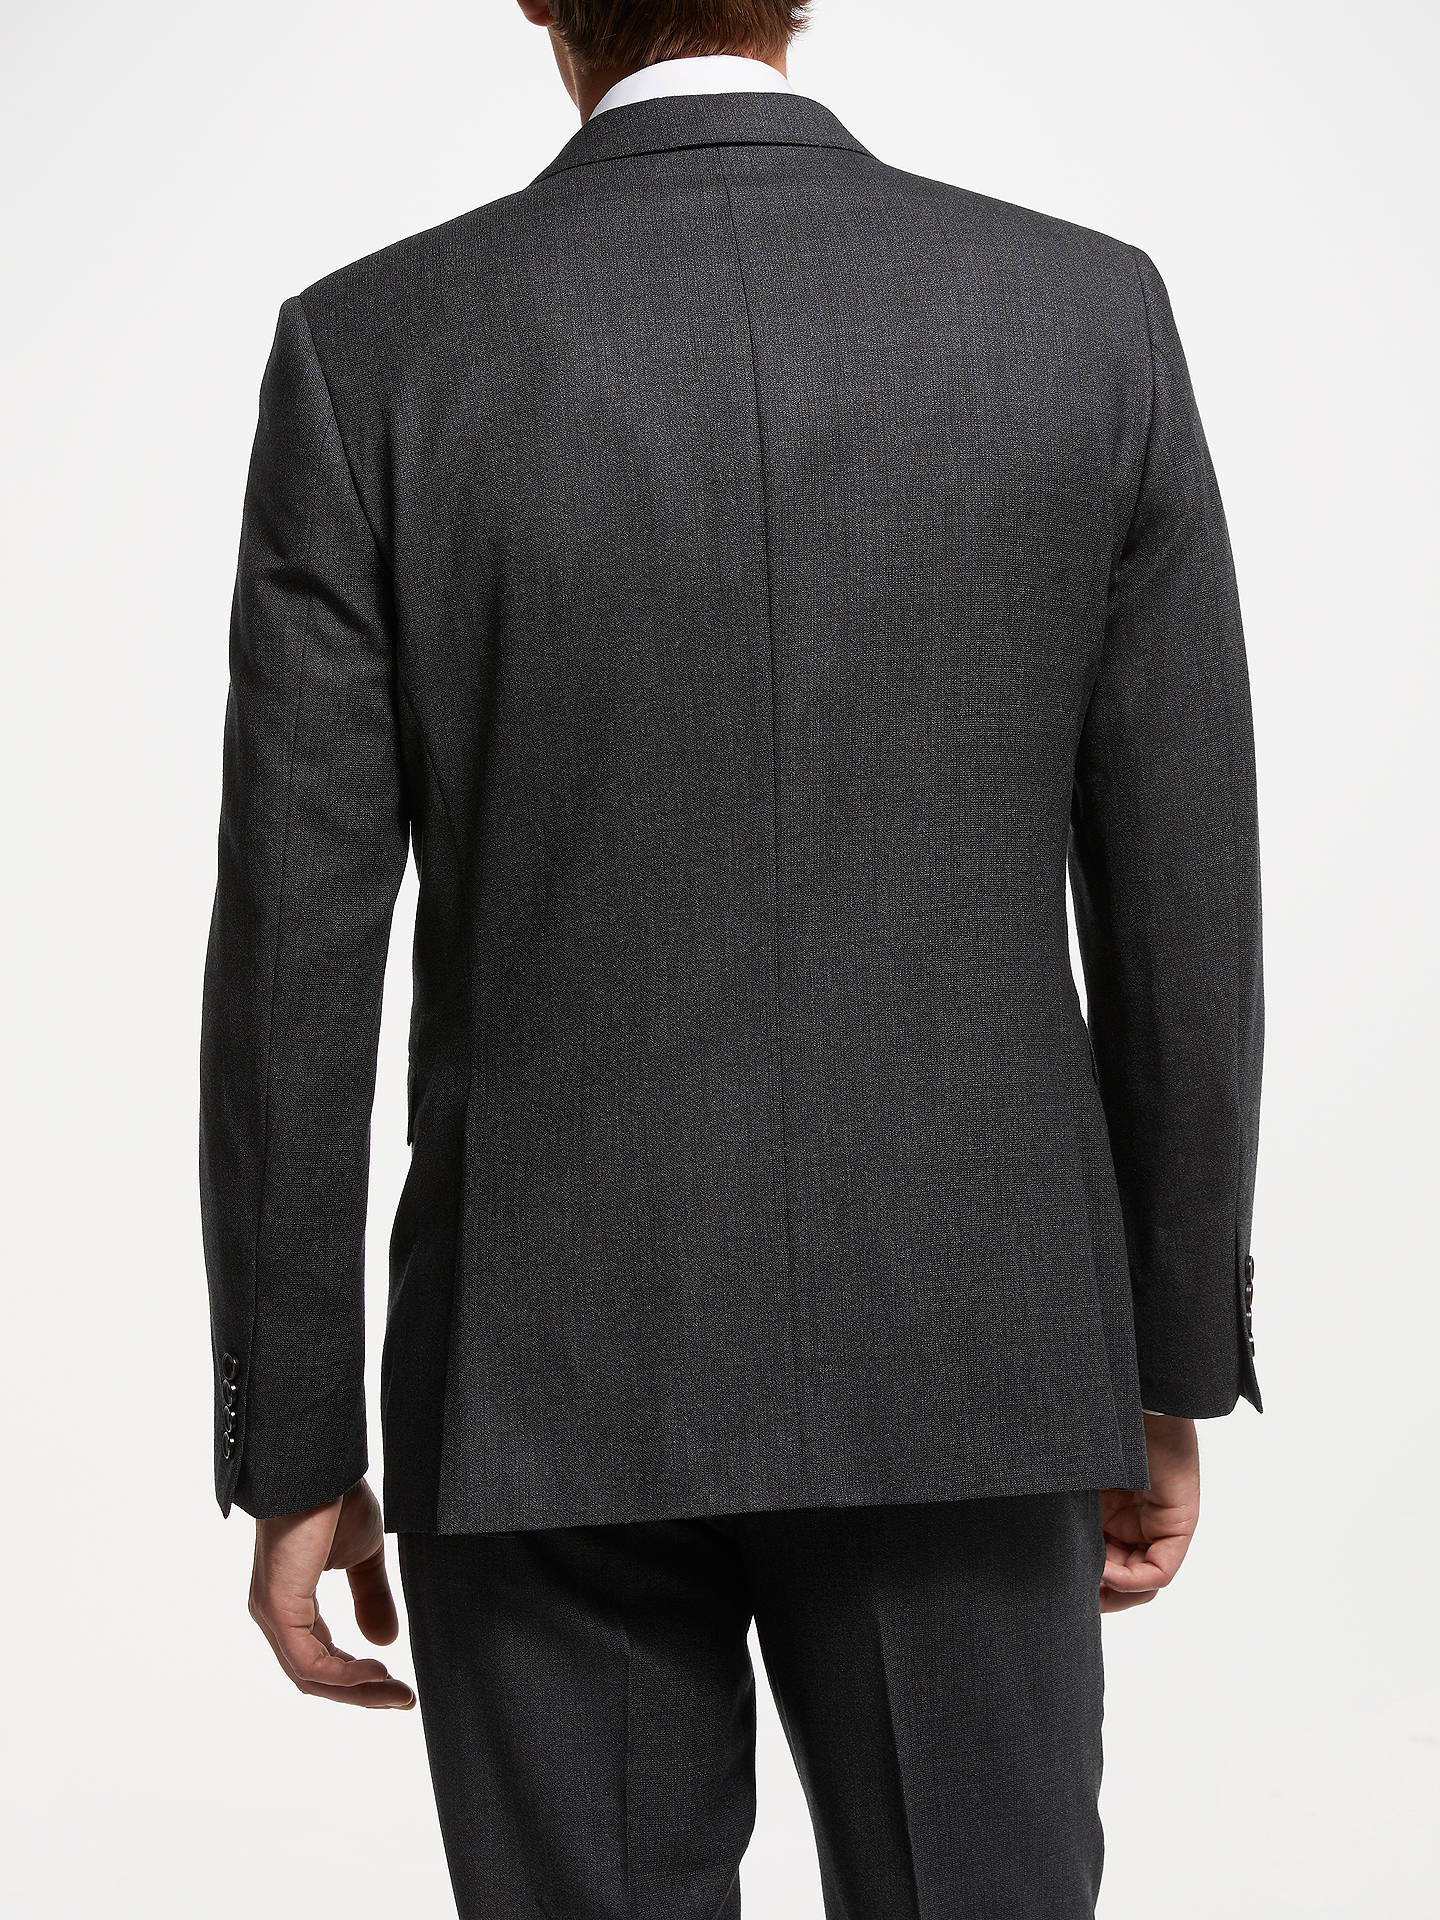 BuyJohn Lewis & Partners Zegna Plain Wool Suit Jacket, Charcoal, 38S Online at johnlewis.com